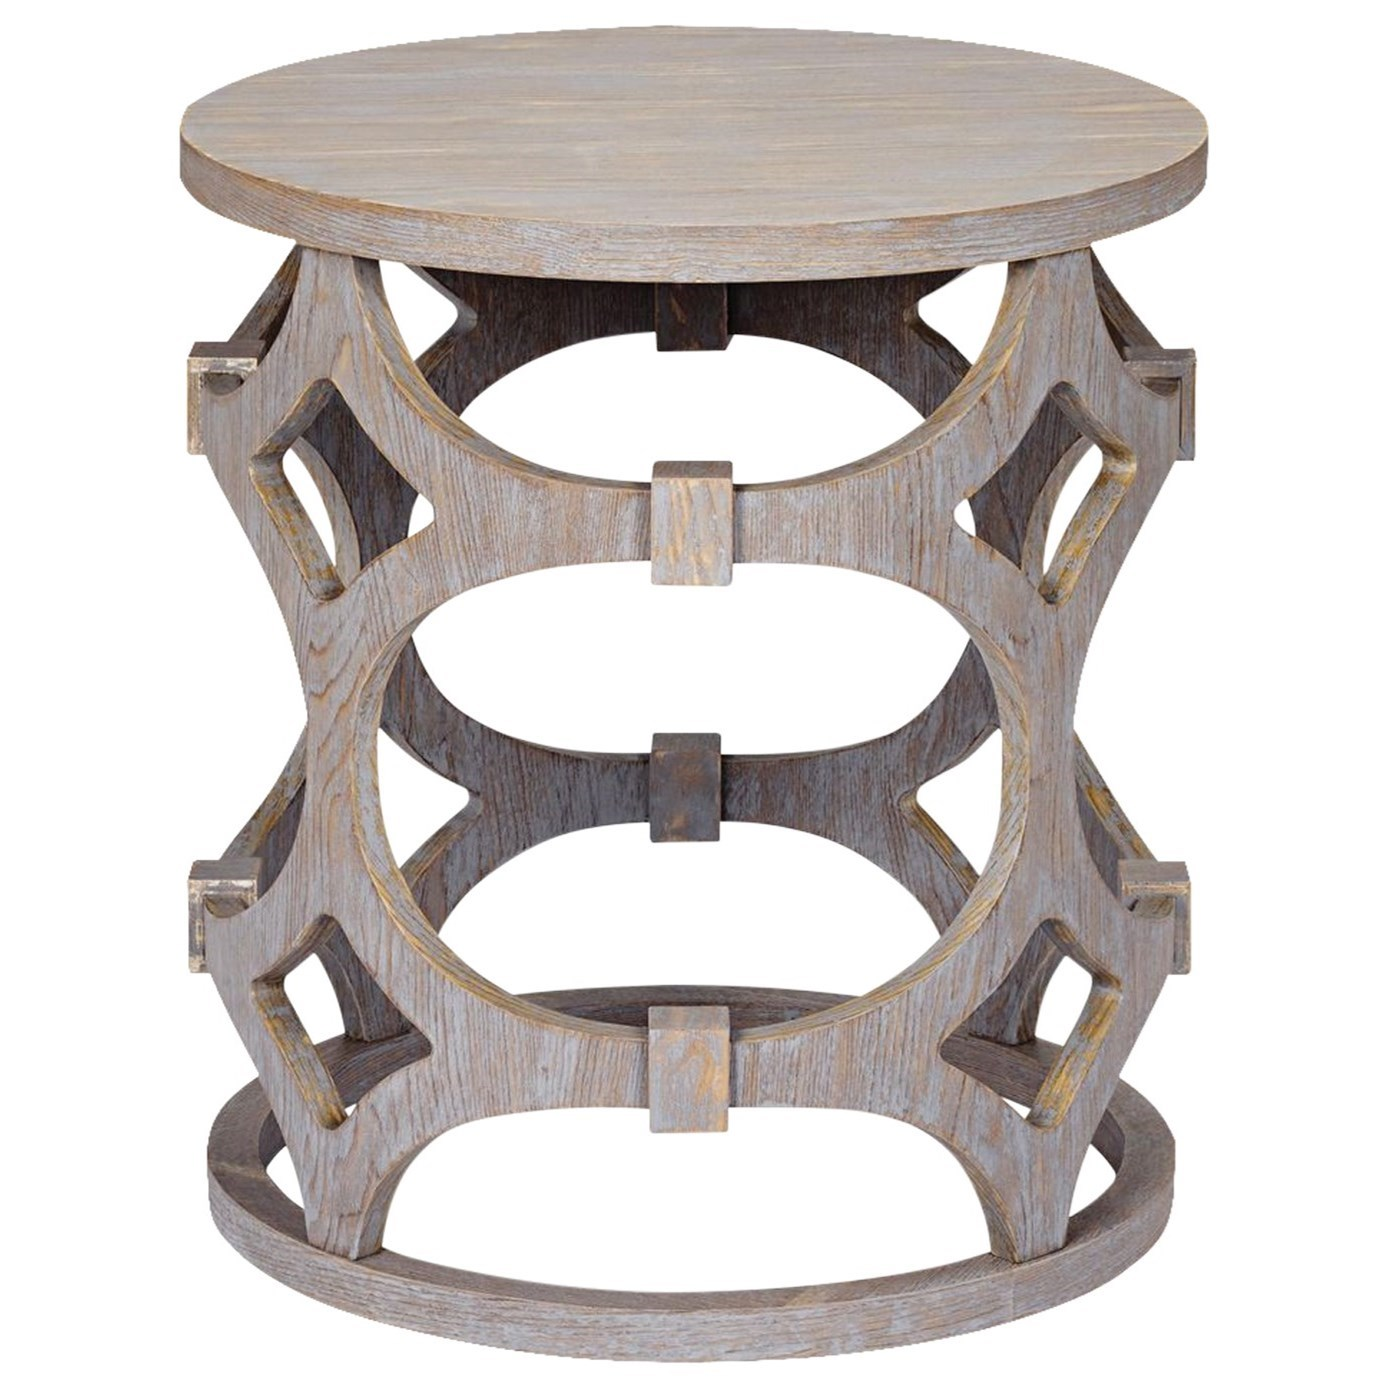 Tuxedo  Tuxedo Round End Table with Gray Finish and by Armen Living at Michael Alan Furniture & Design